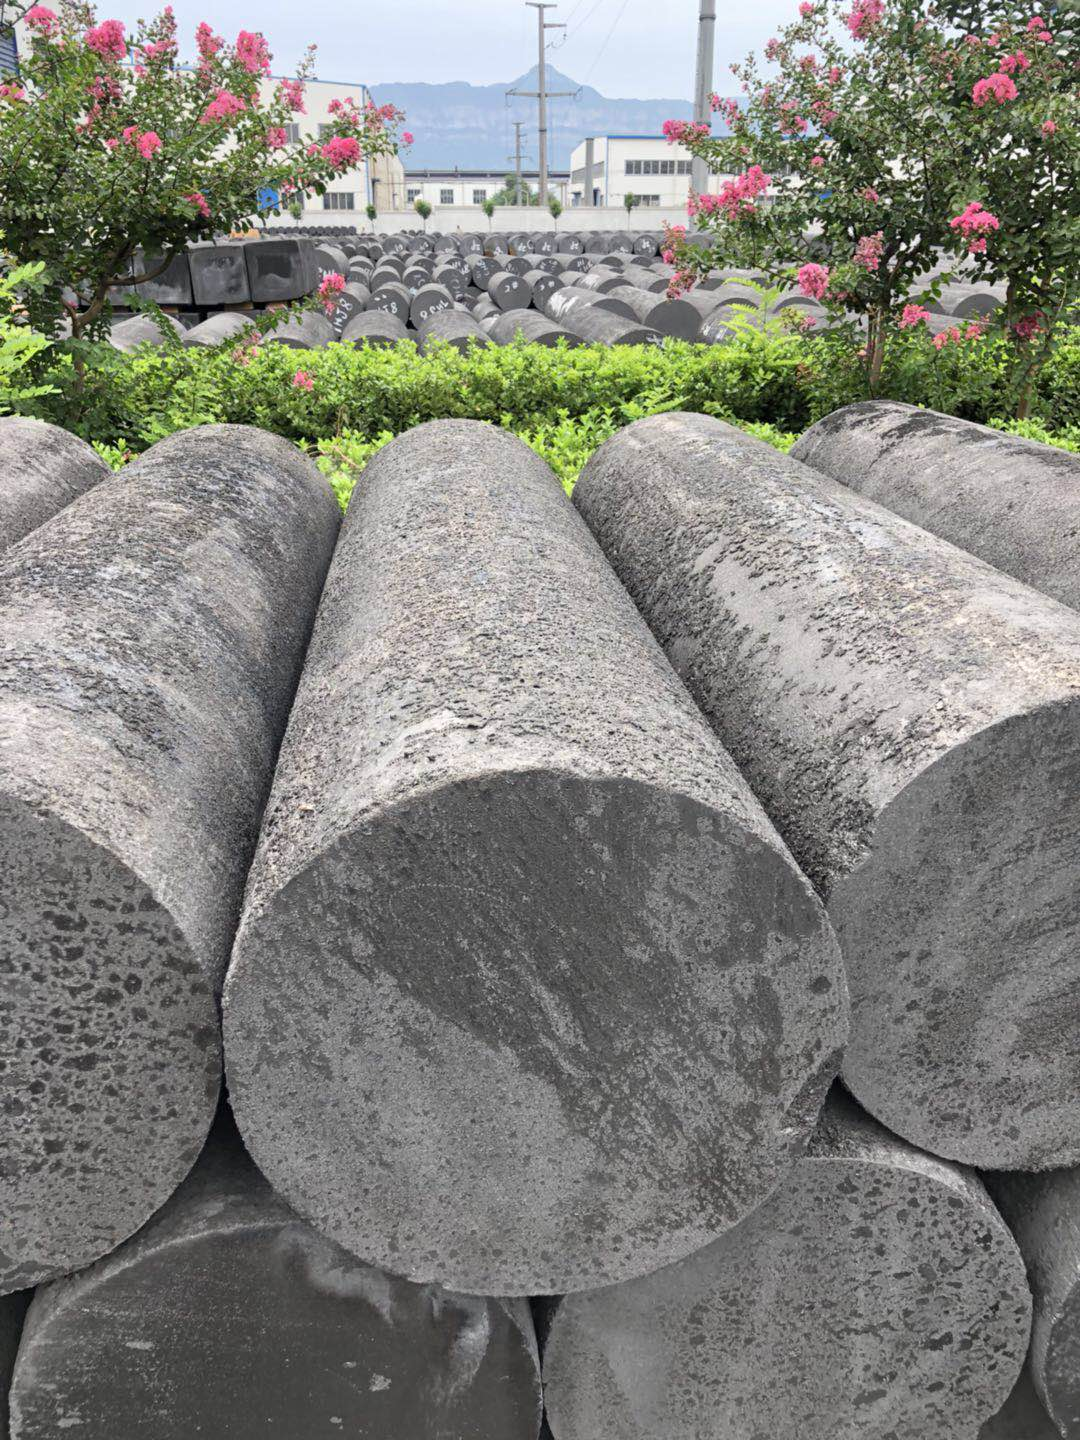 UHP HP RP Graphite Electrodes-China Supplier for Steel Ingot Production